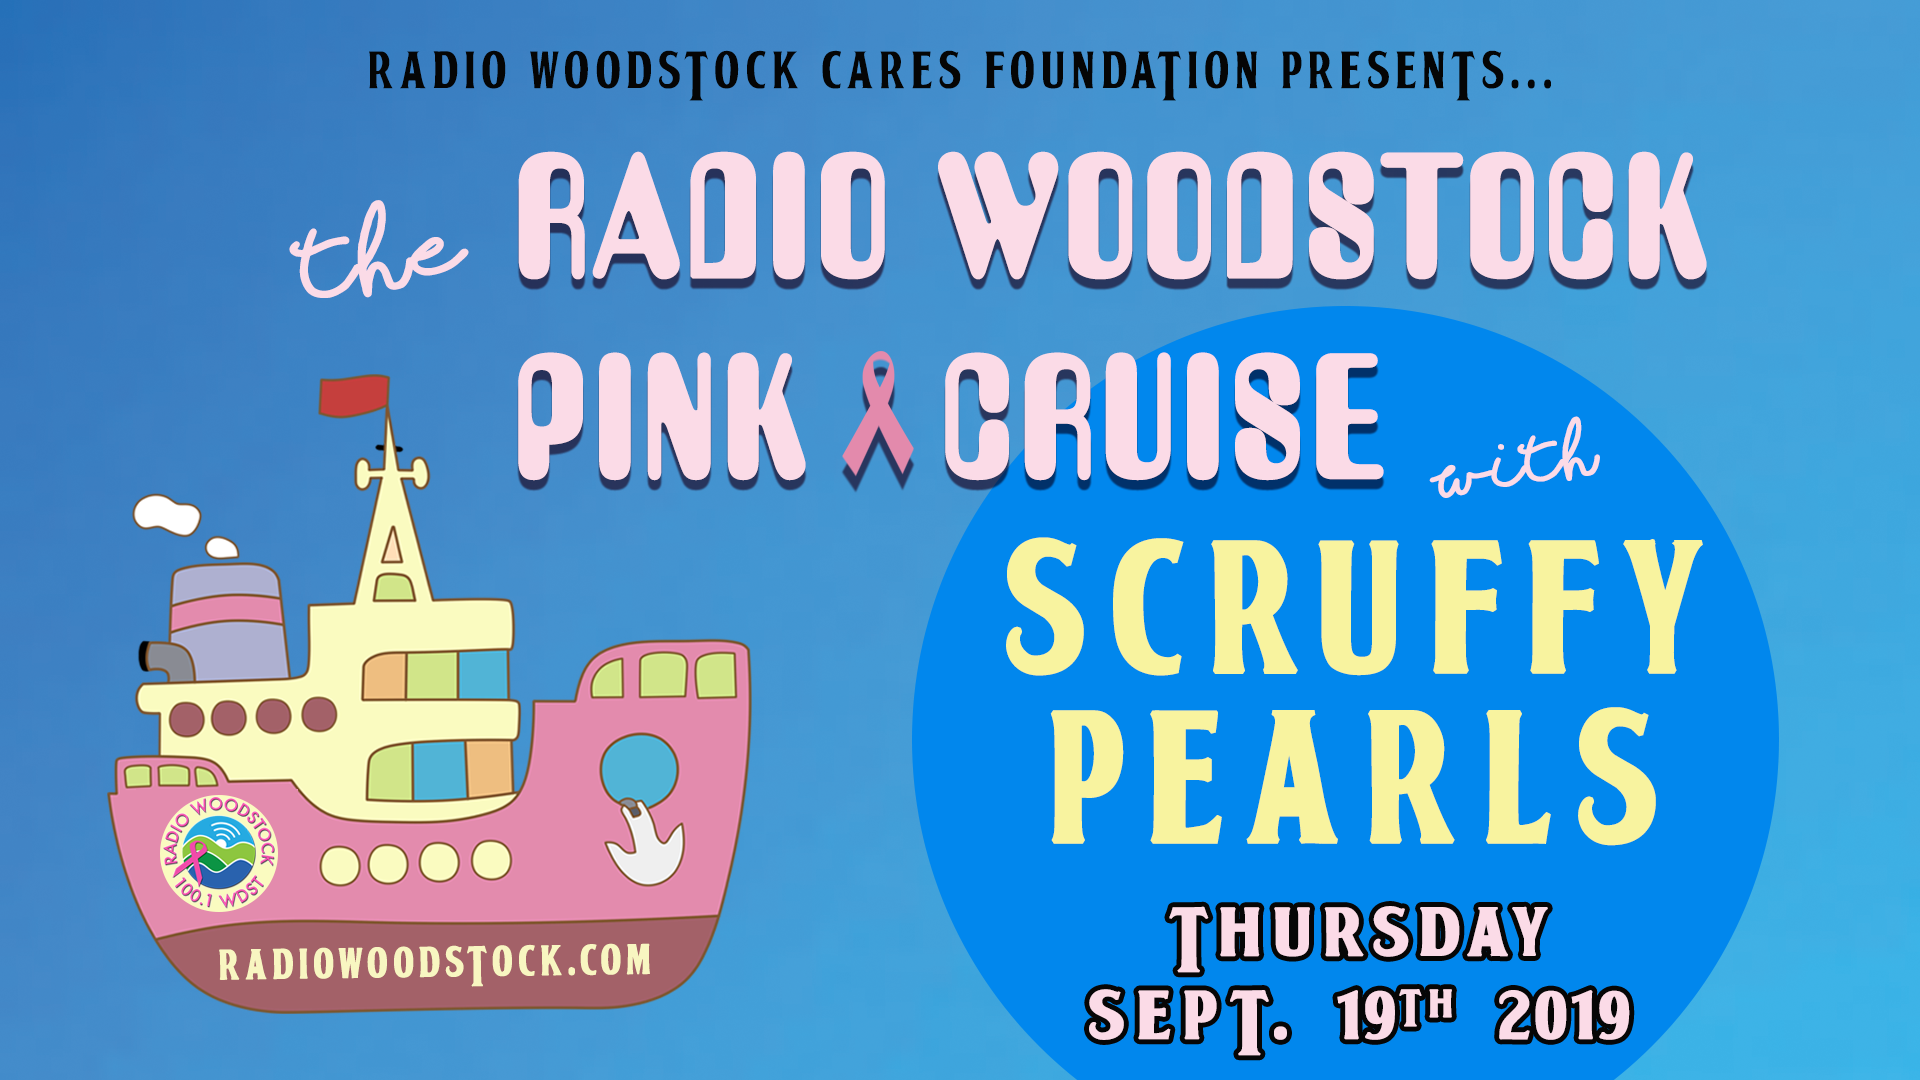 ON SALE NOW: PINK Cruise with Scruffy Pearls